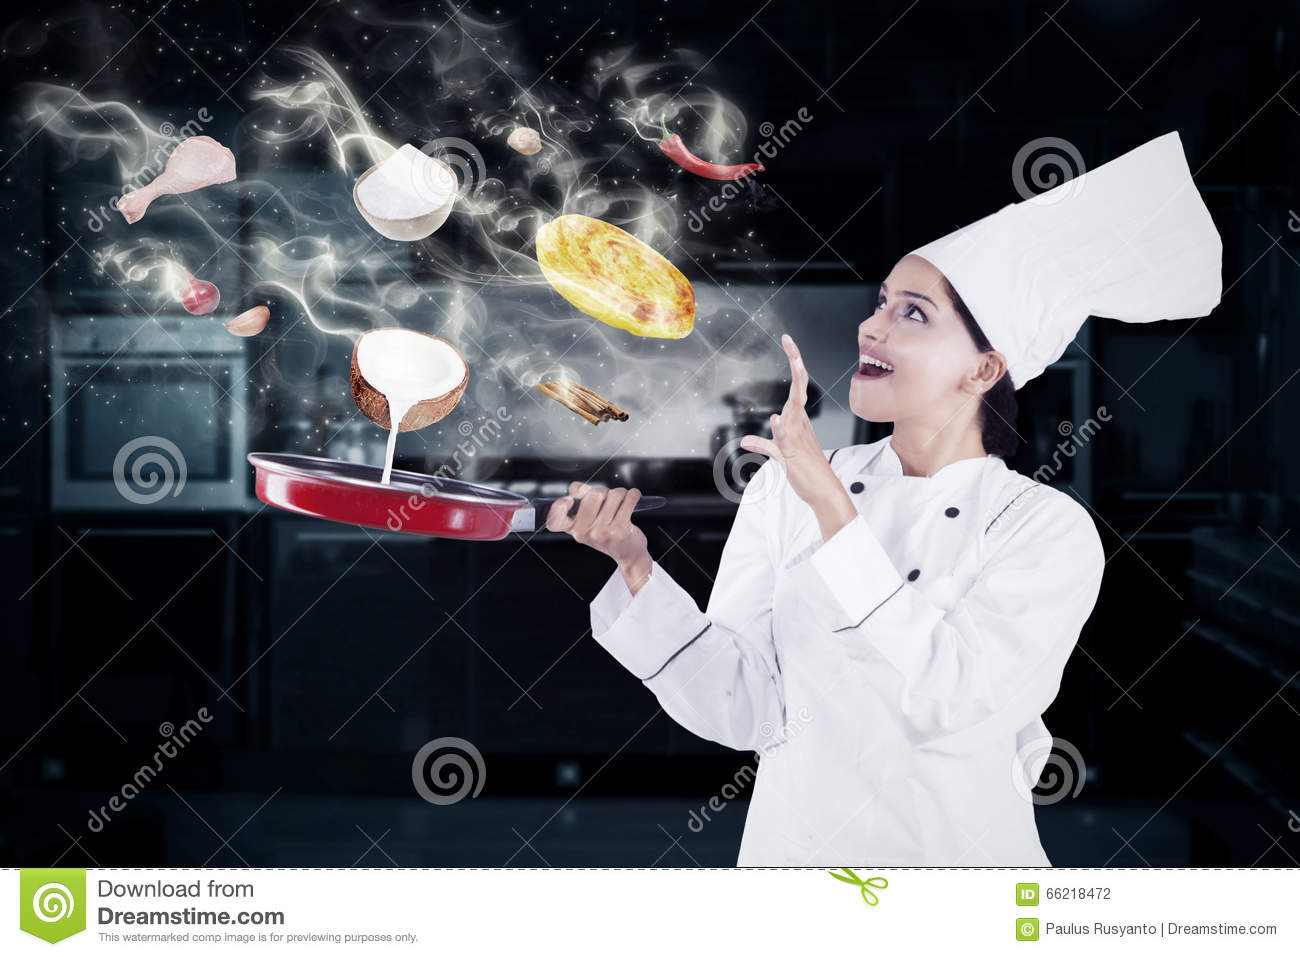 https://thumbs.dreamstime.com/z/indian-woman-cooking-magic-female-chef-kitchen-wearing-chef-uniform-66218472.jpg Indian Woman Cooking